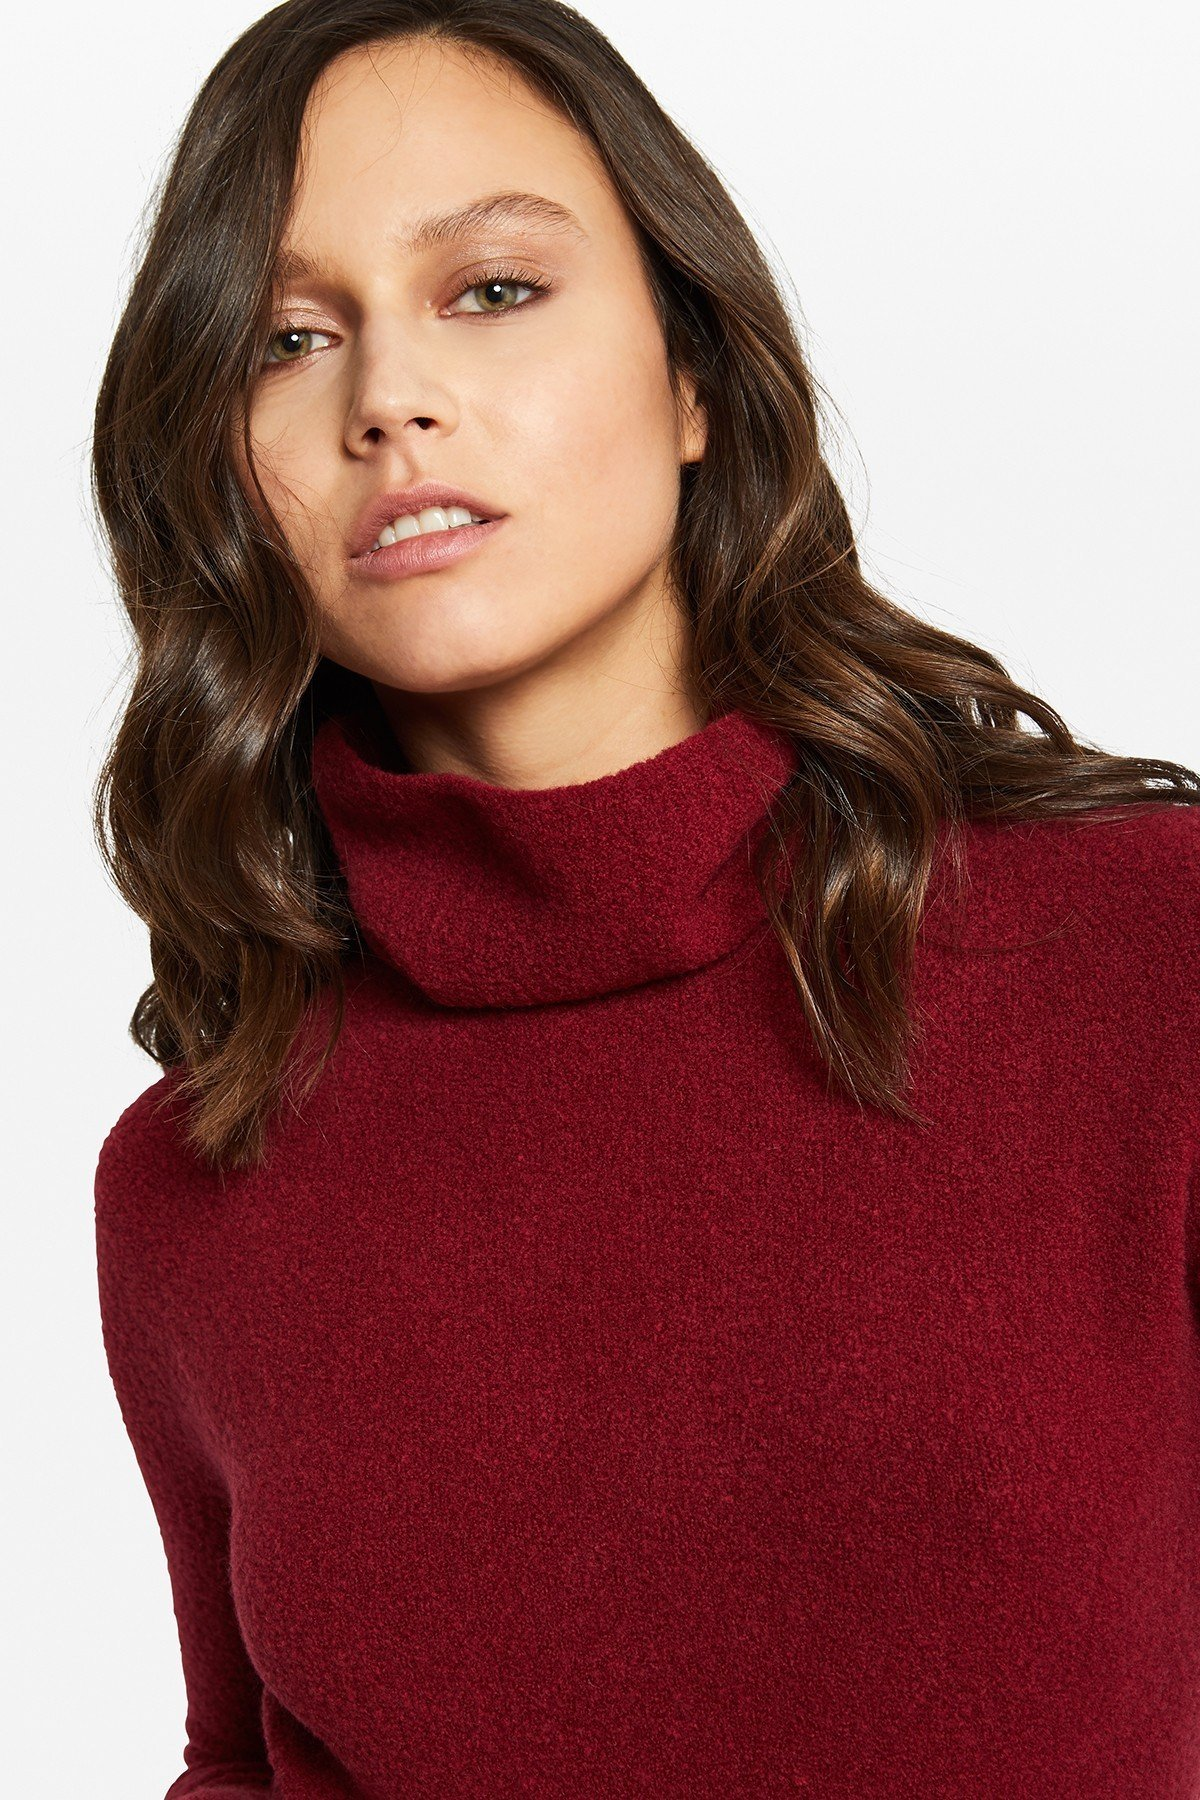 Polo-necked jumper